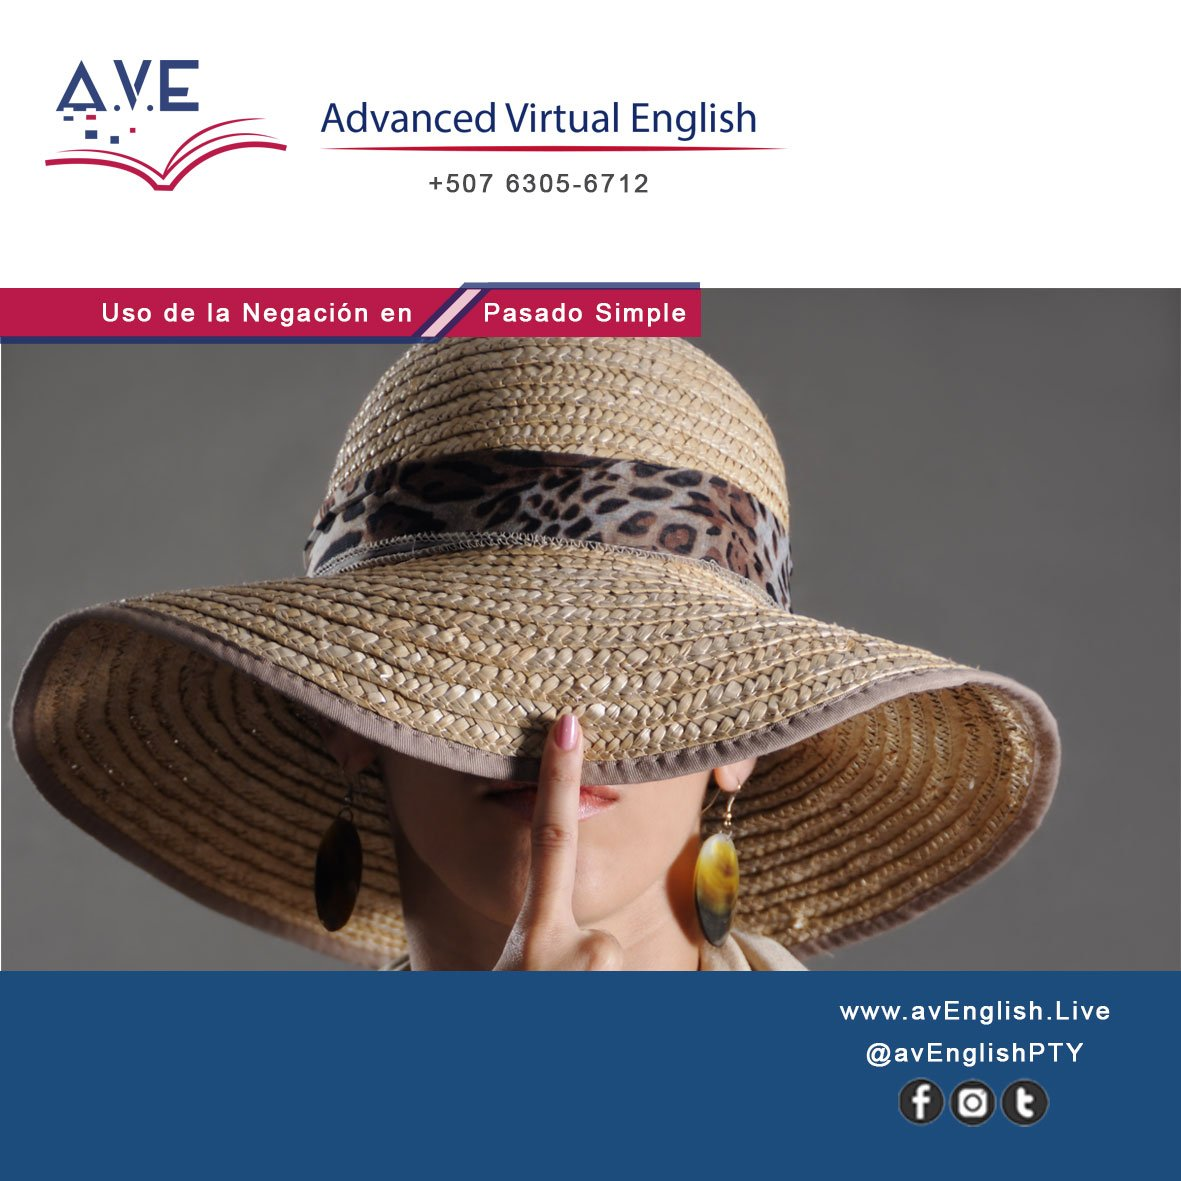 Advanced Virtual English On Twitter Se Debe Seguir La